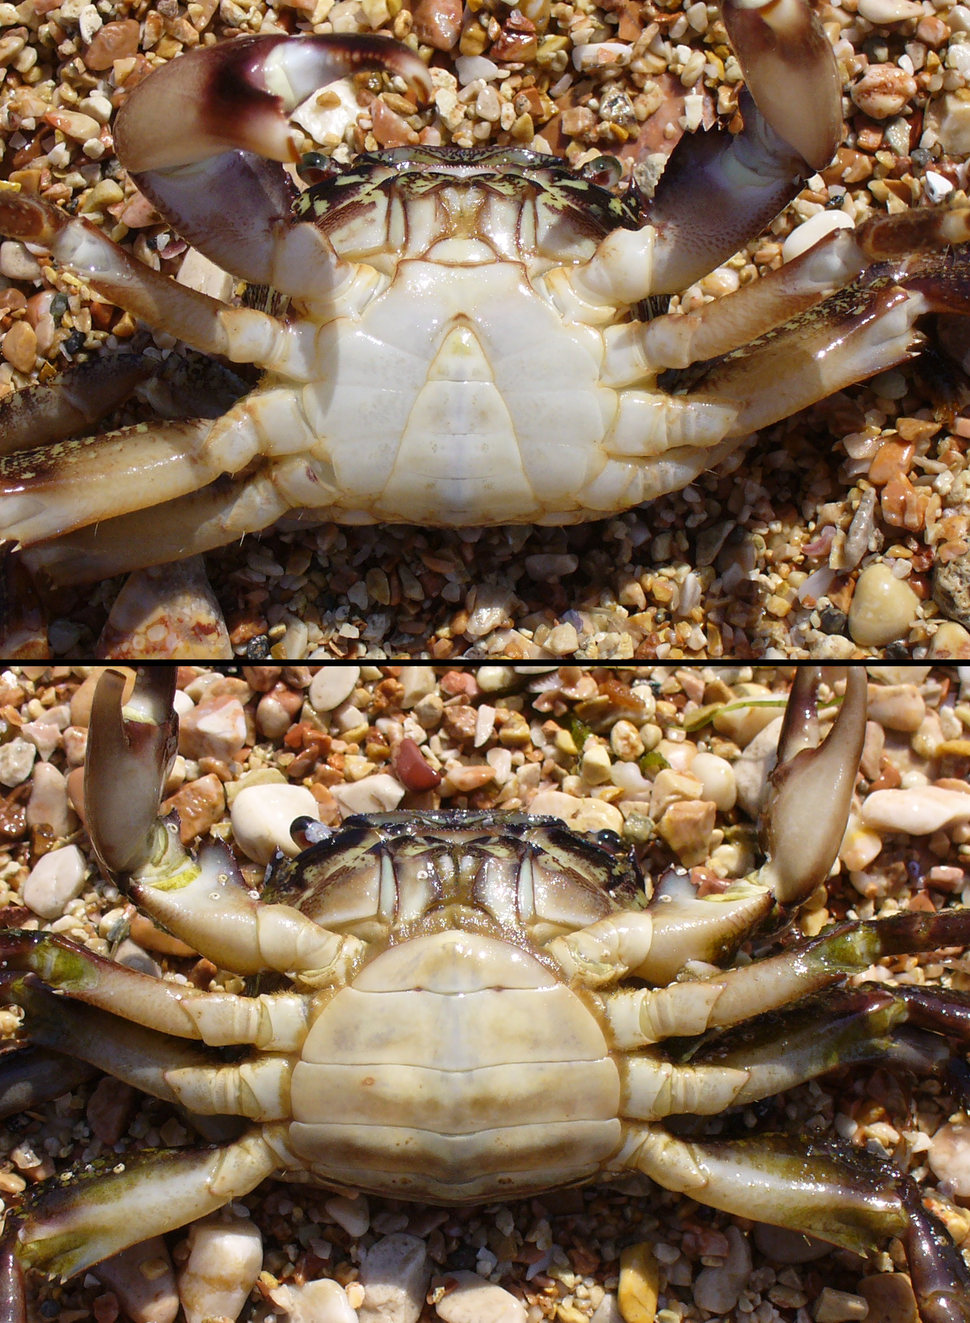 Pachygrapsus marmoratus male female